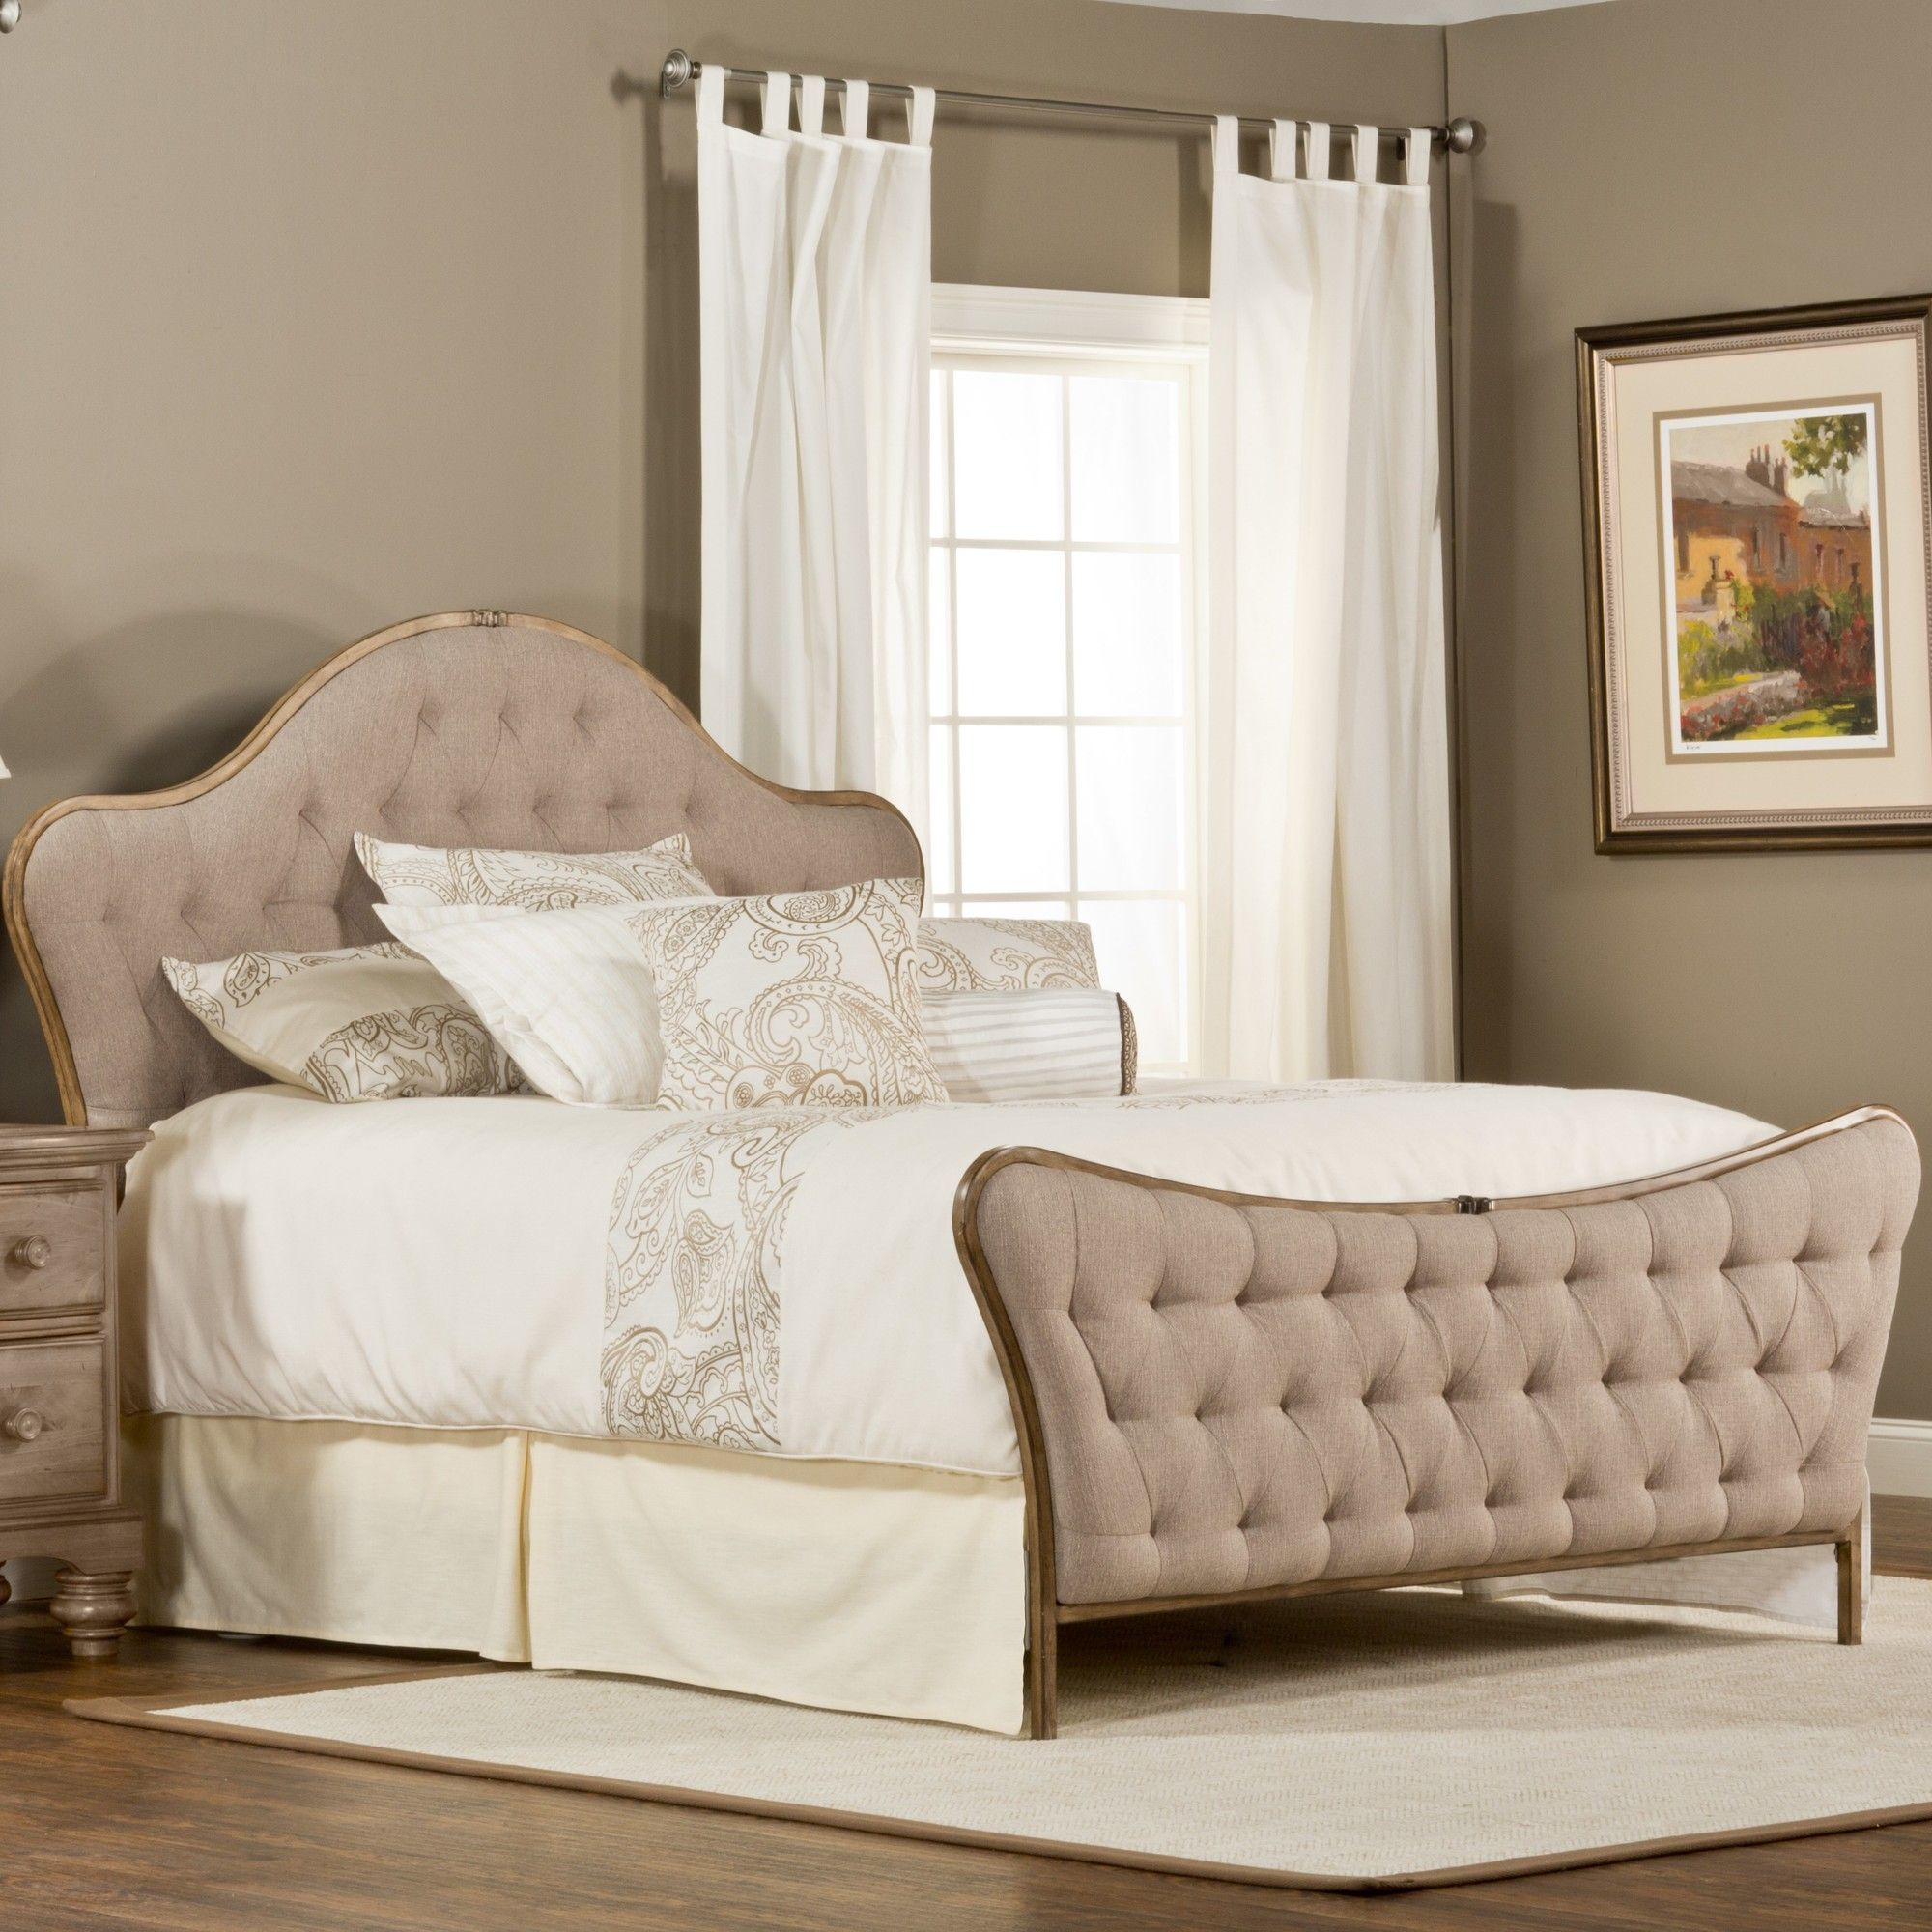 verendrye upholstered bed products pinterest upholstered beds